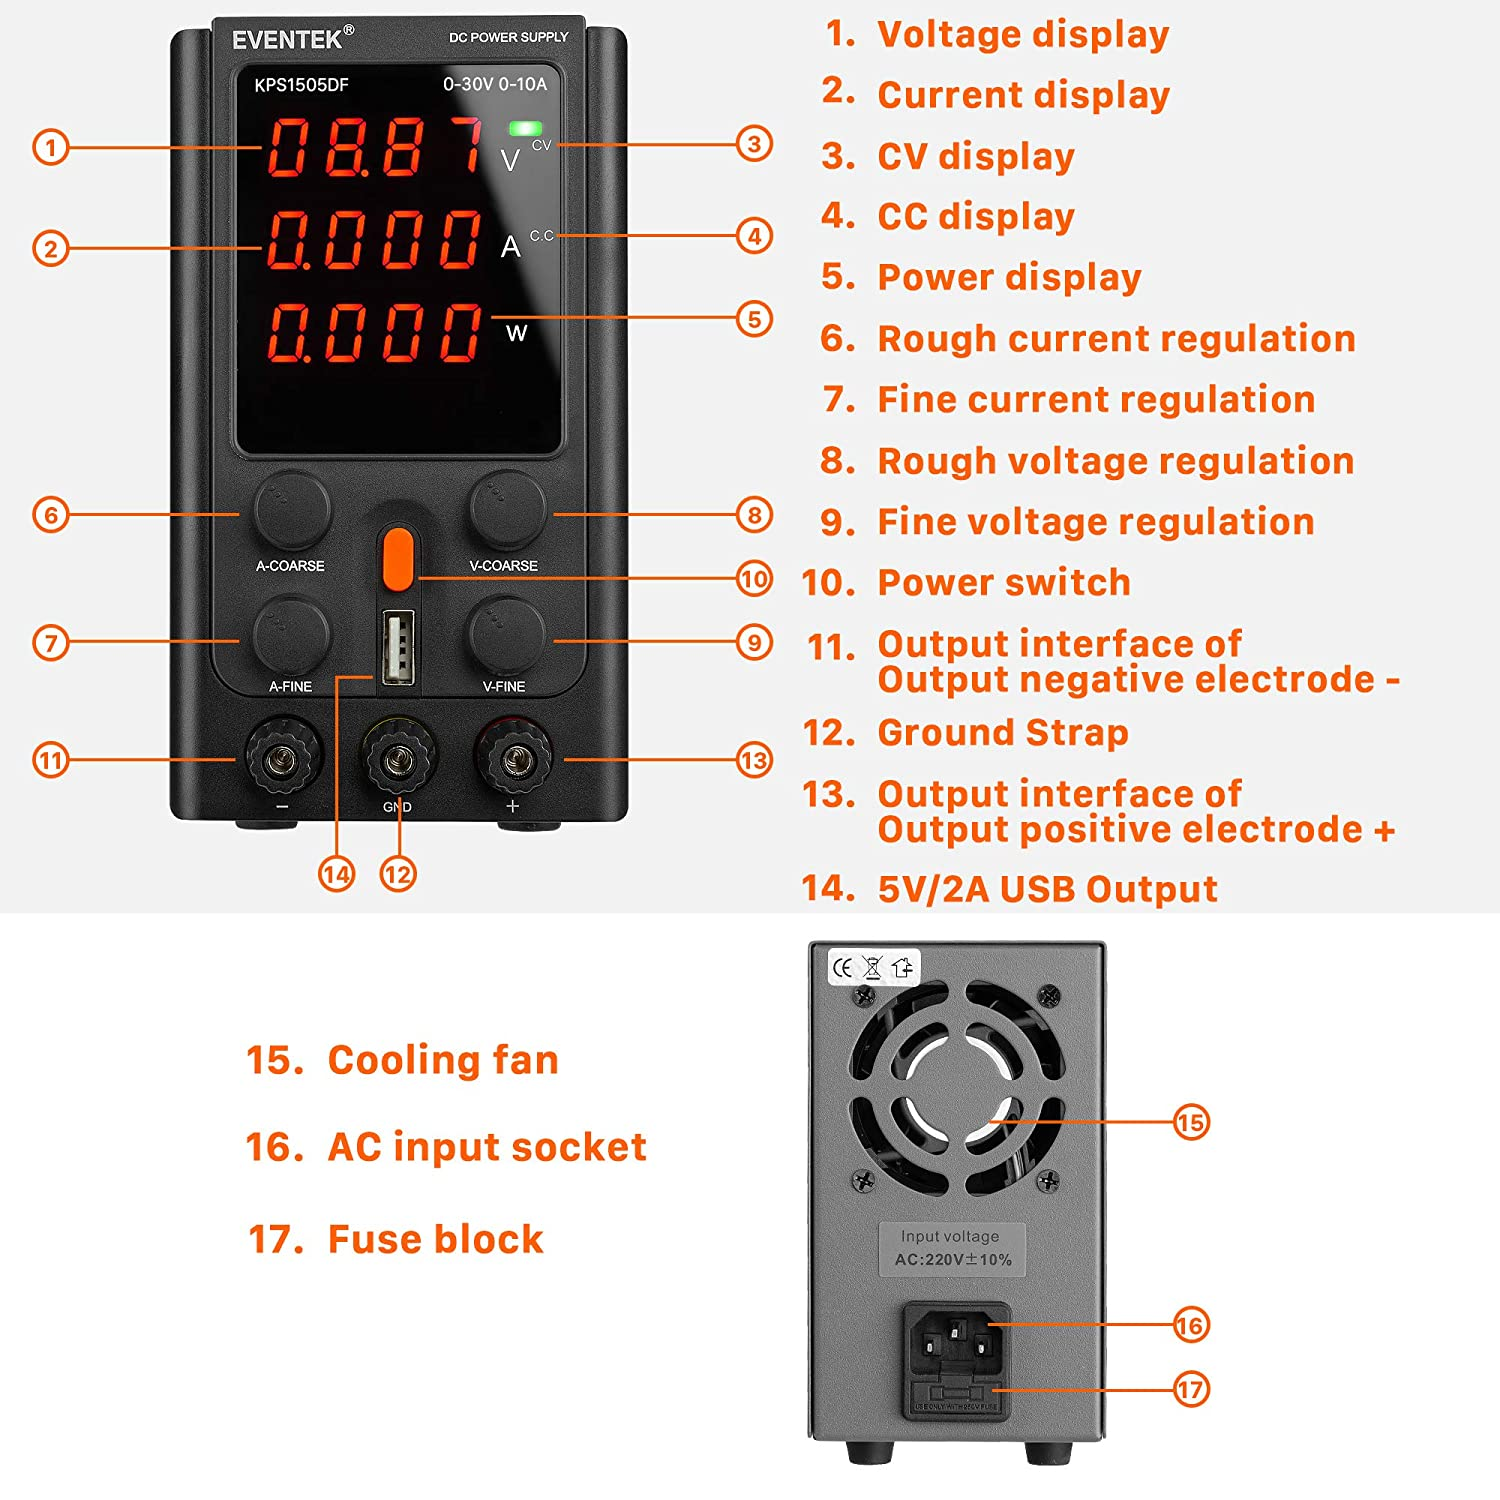 eventek Adjustable Switching DC Regulated Bench Power Supply with 4-Digits LED Display Alligator Cord//Test Lines DC Power Supply Variable 30V 10A 5V2A USB Interface